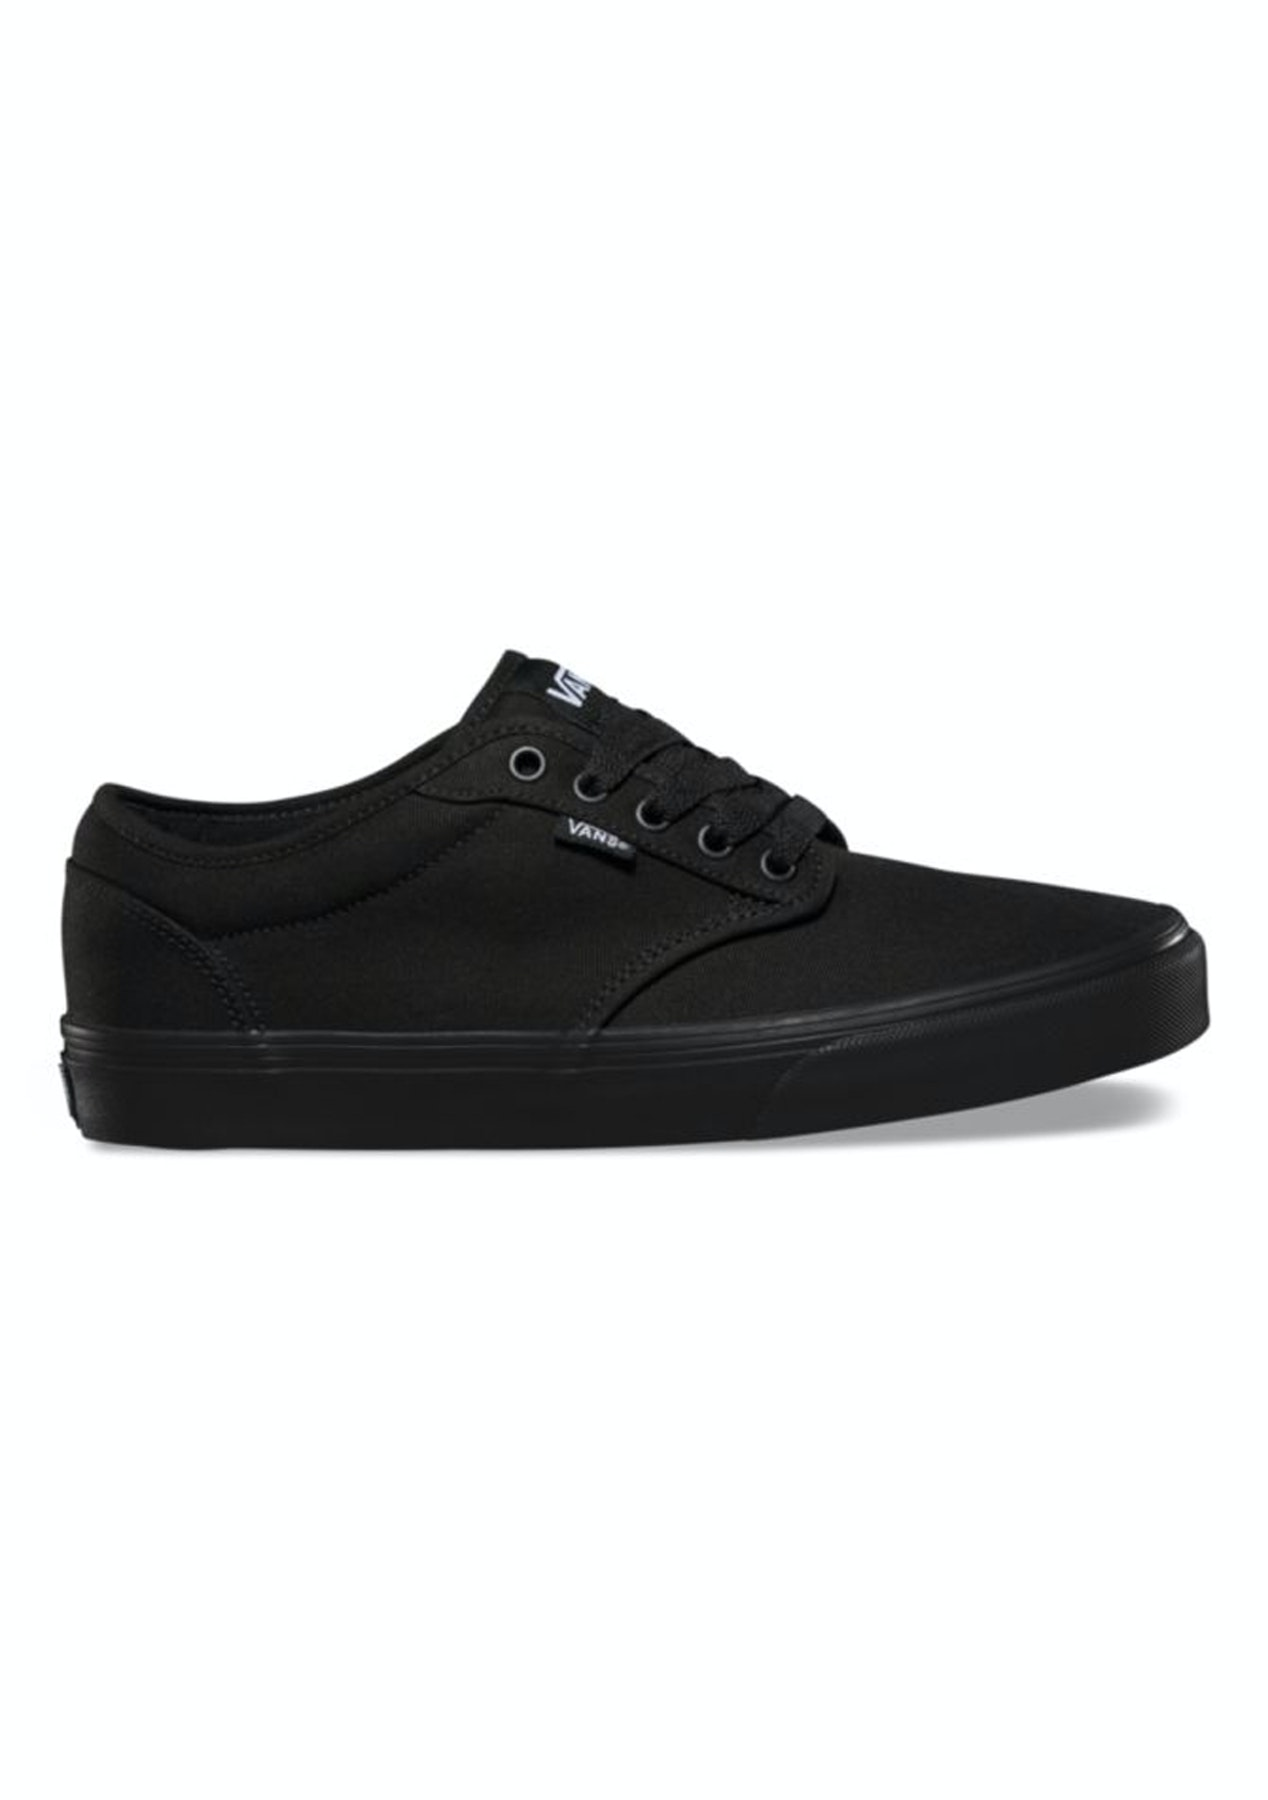 Vans - Womens Atwood Low - Canvas - Black Black - Free Shipping Street  Shoes + Slides - Onceit b81468914efc